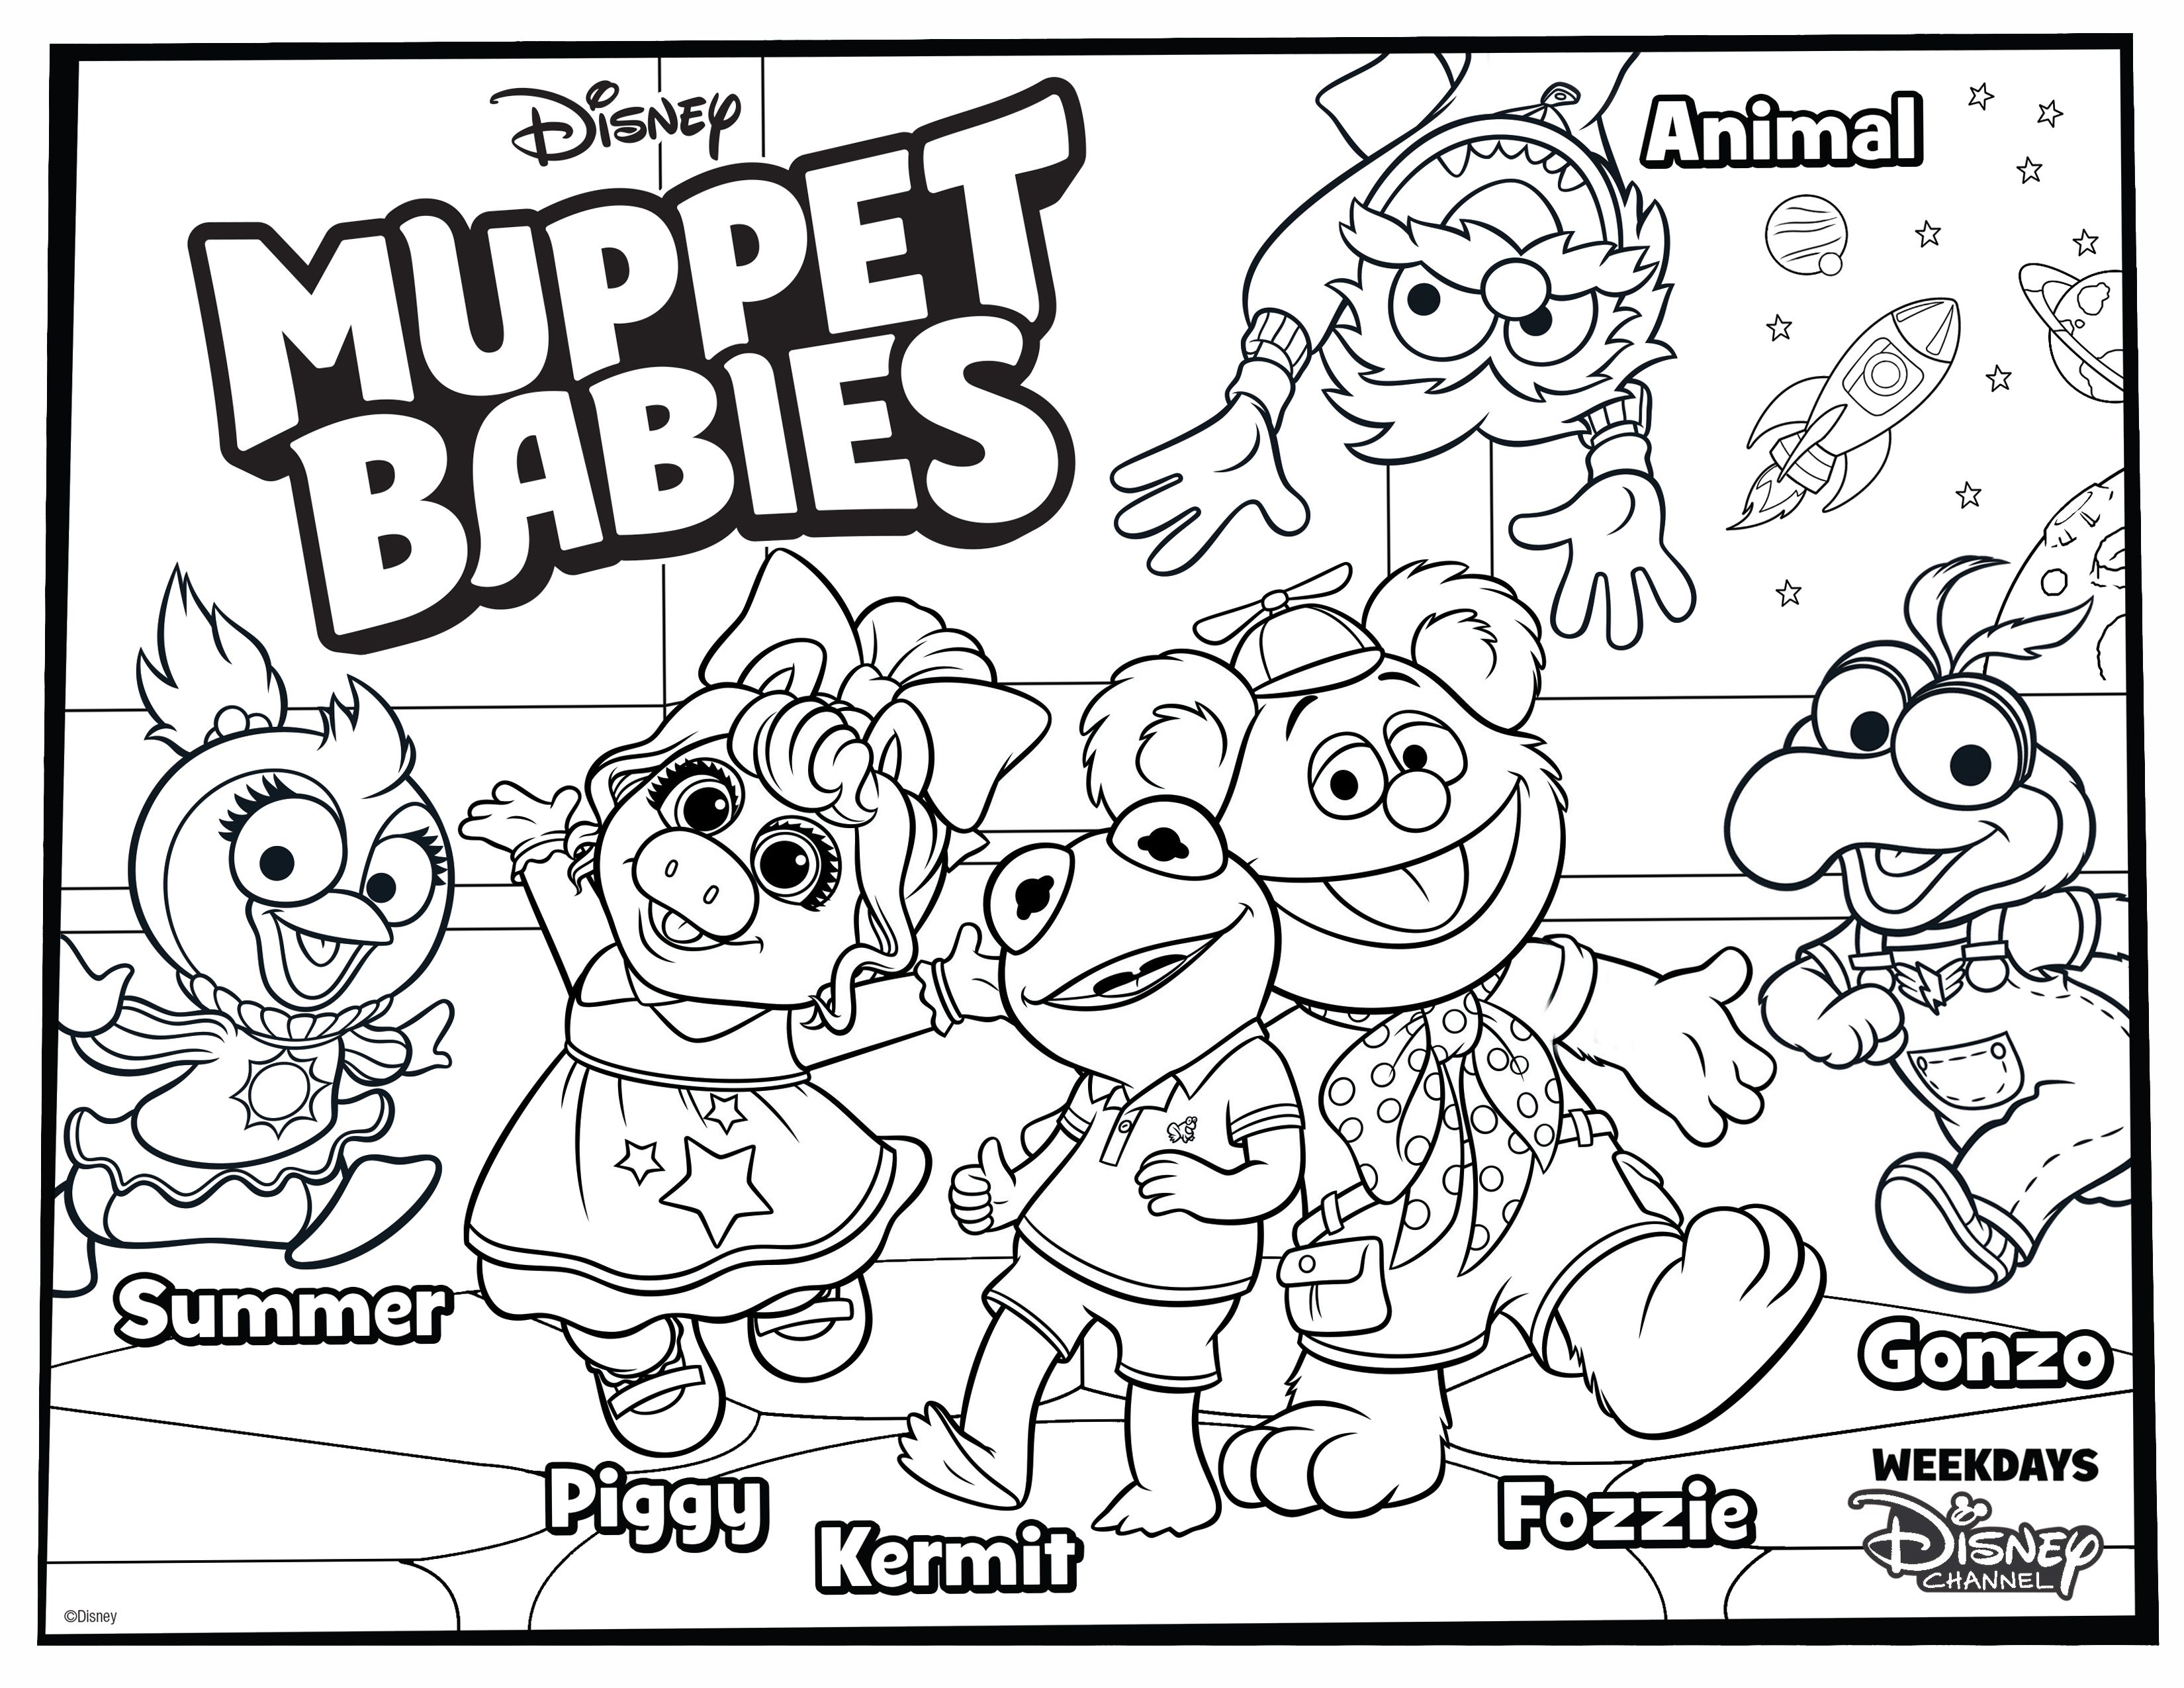 Have Some Family Fun With This Muppet Babies Coloring